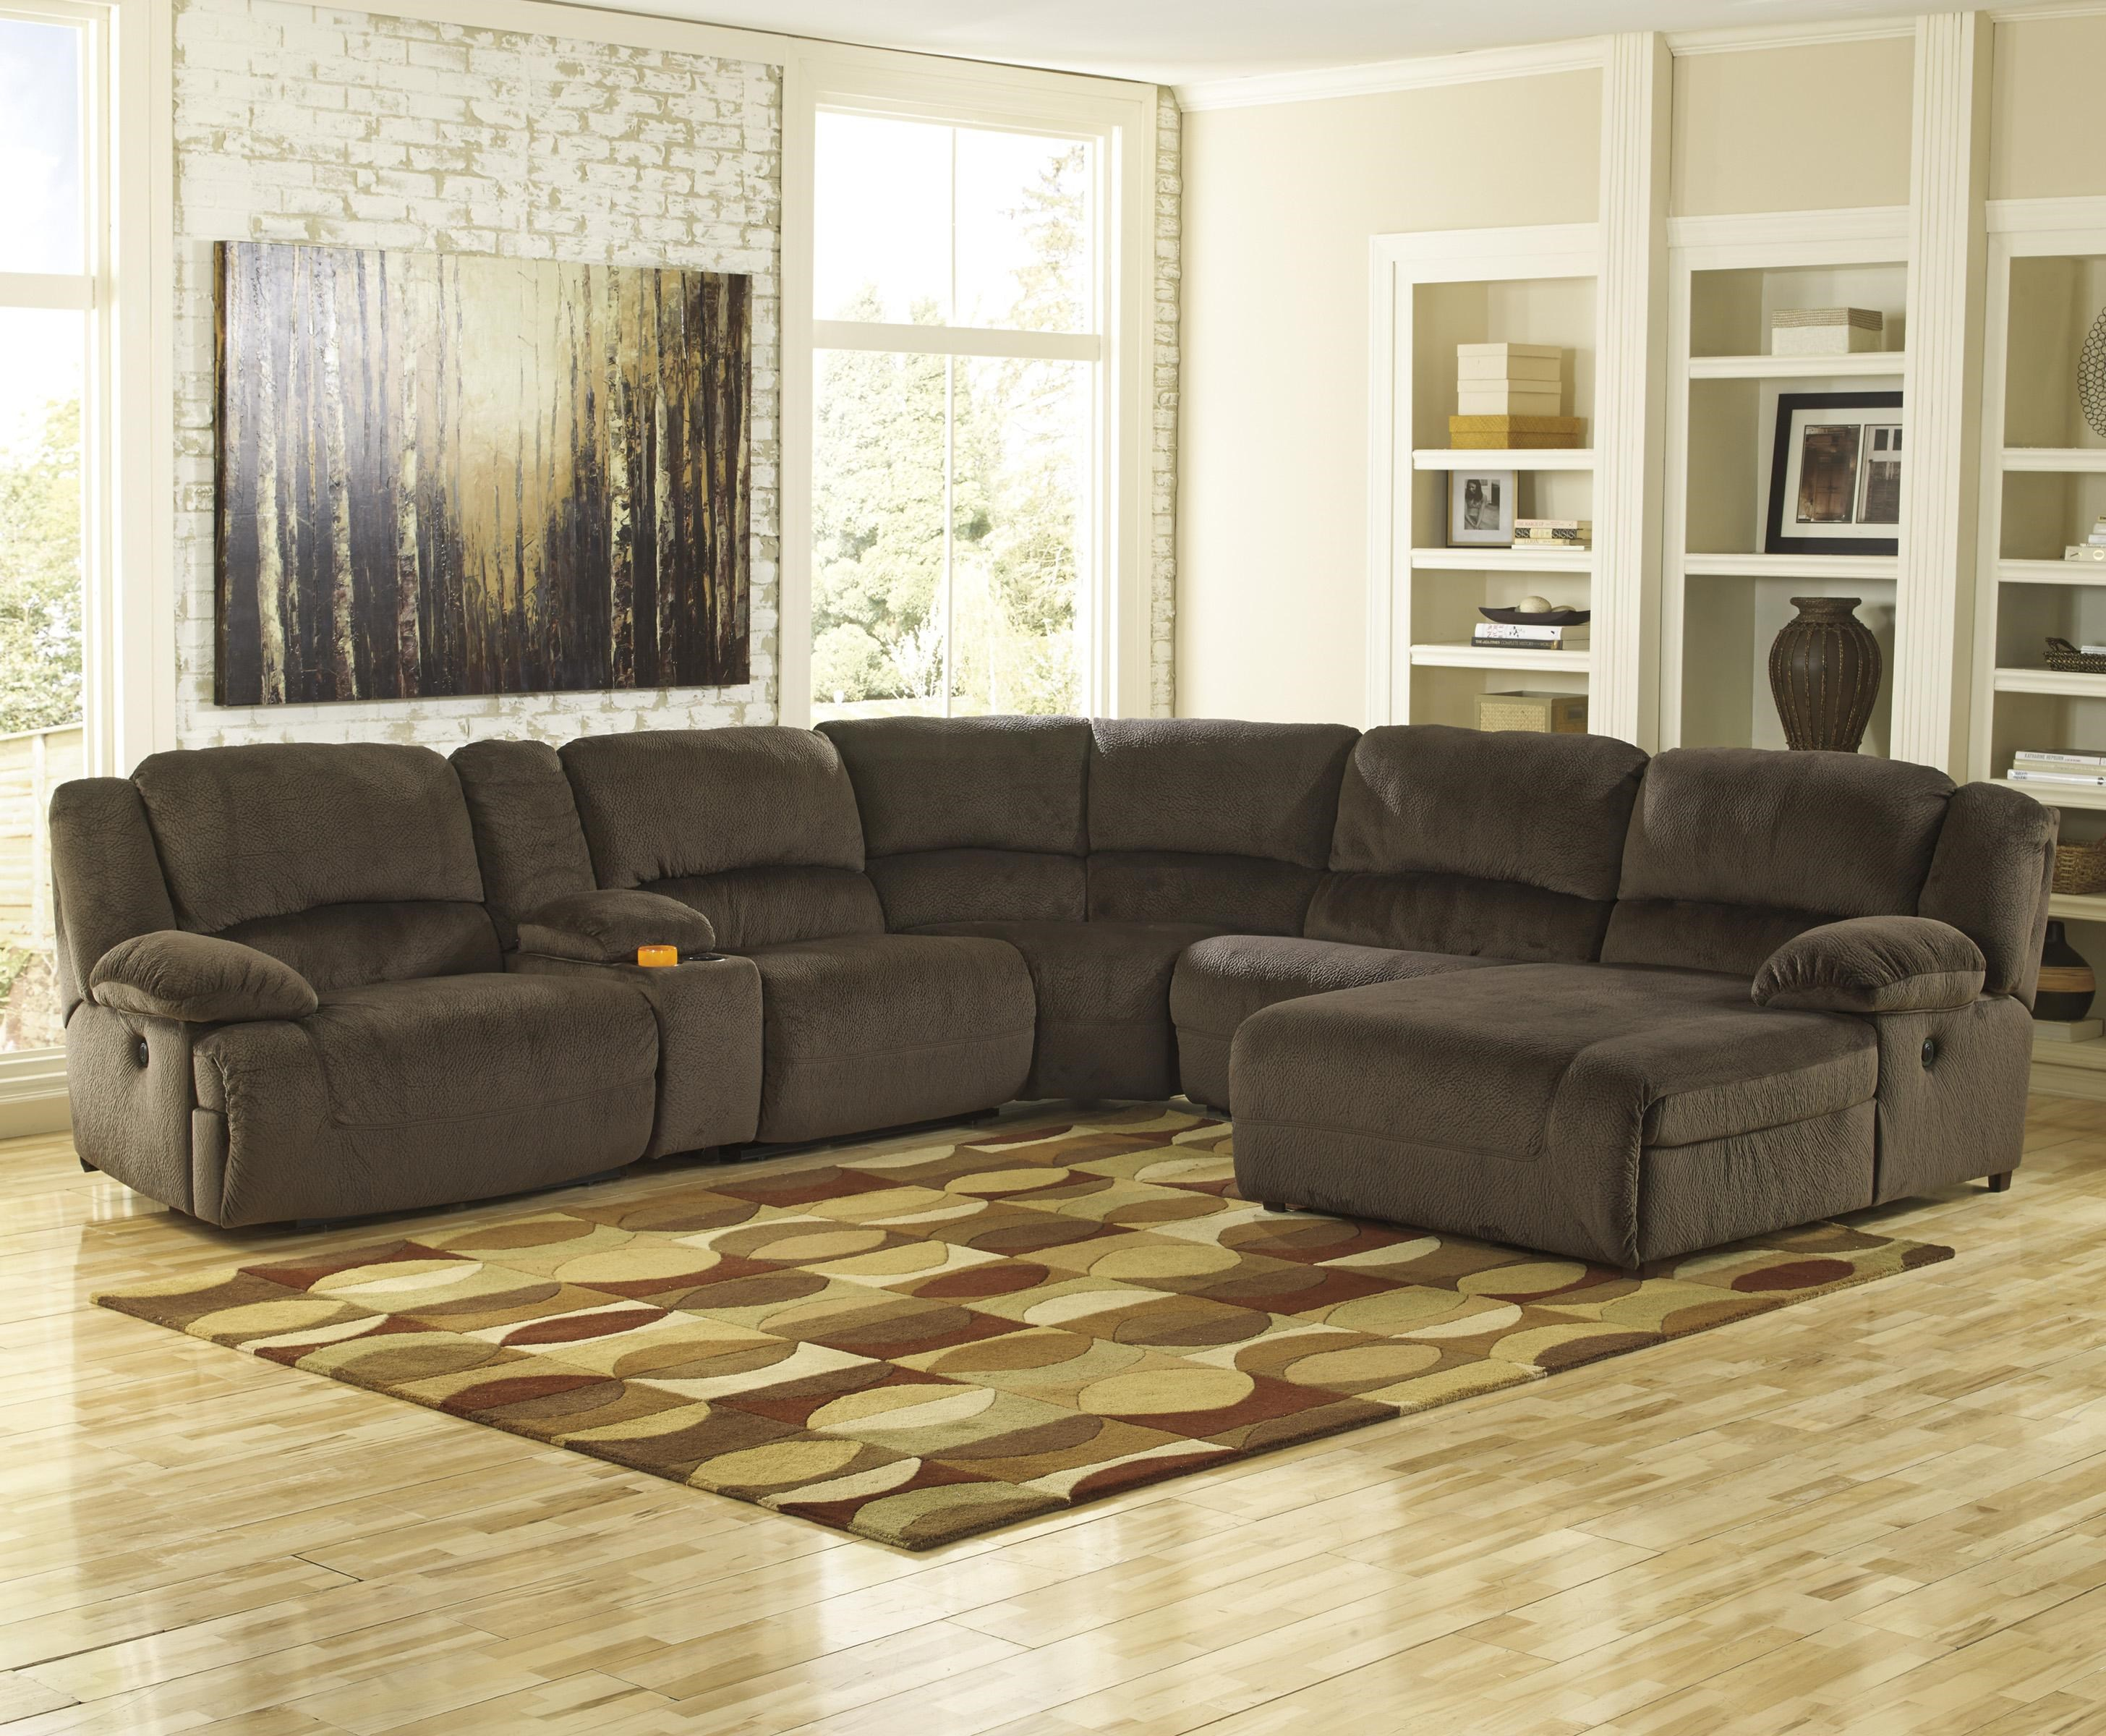 Signature Design By Ashley Toletta   Chocolate Reclining Sectional With  Console U0026 Right Press Back Chaise